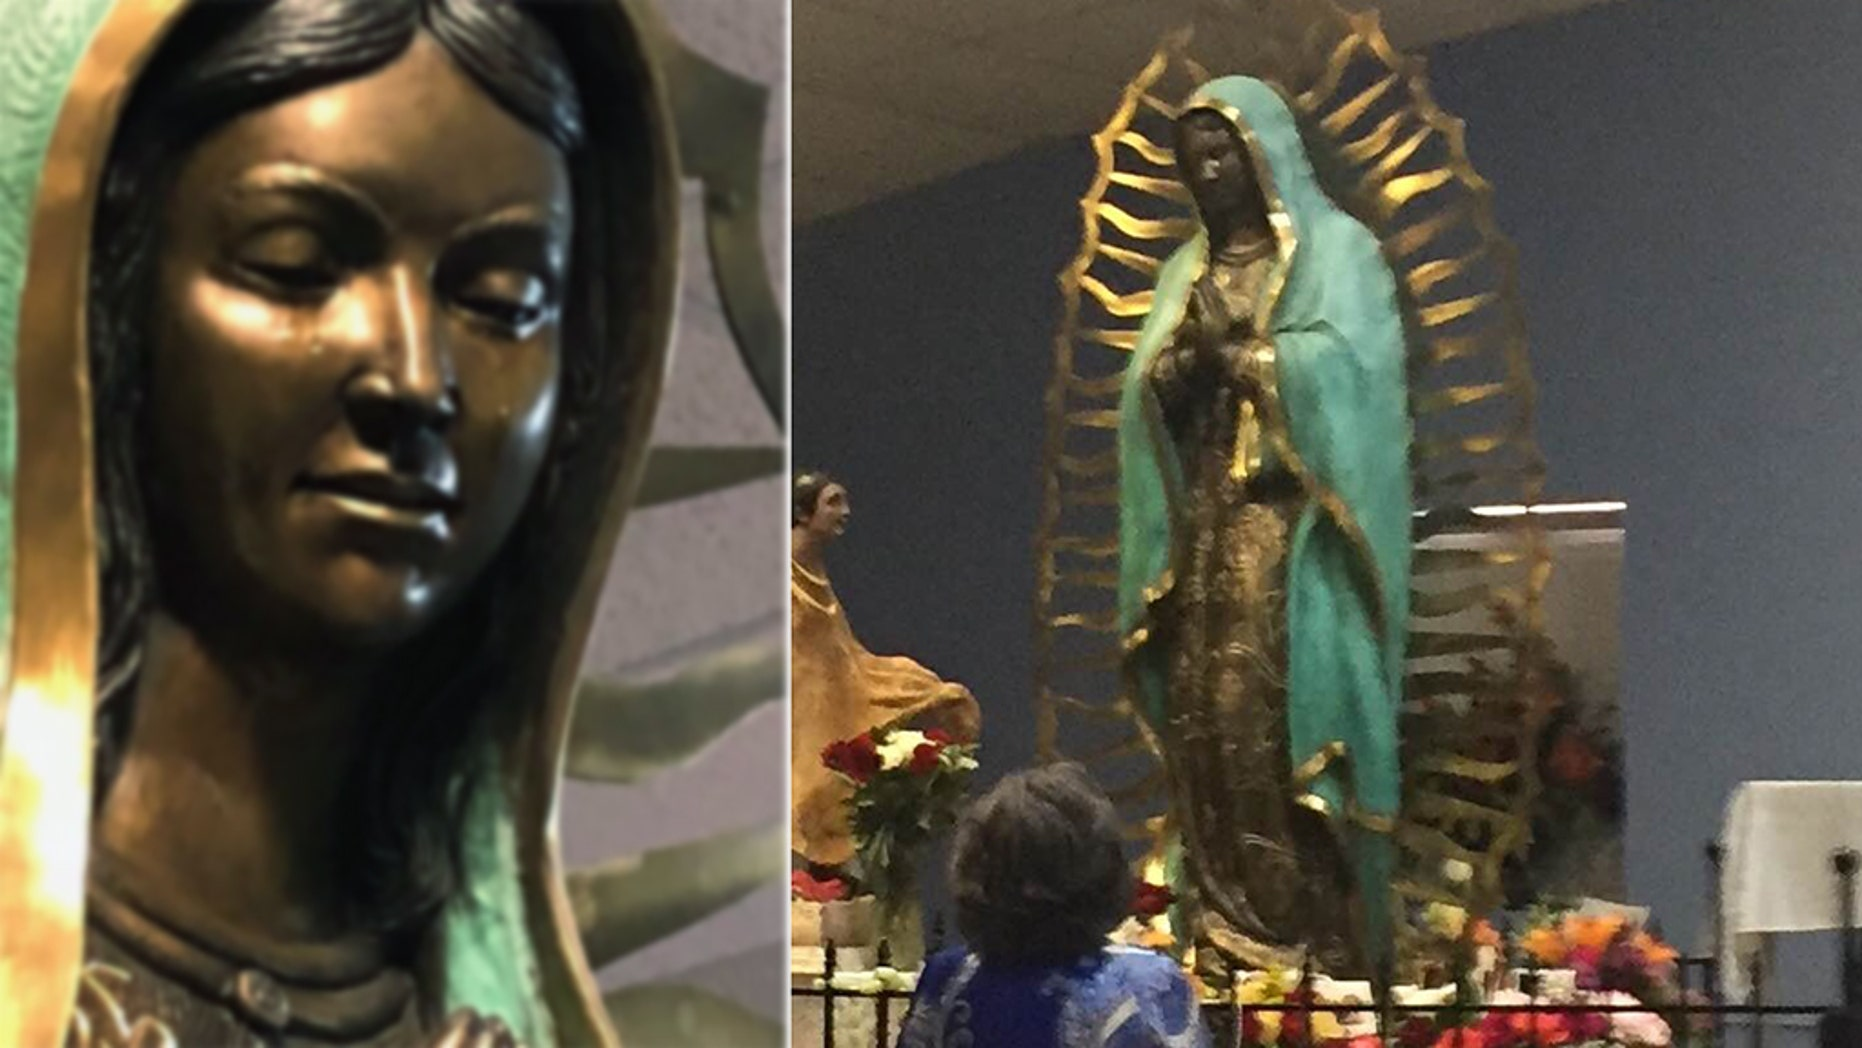 A sculpture of the Virgin Mary that appeared to be crying at the Our Lady of Guadalupe Catholic Church in Hobbs in New Mexico is being investigated after it was determined her tears were olive oil.